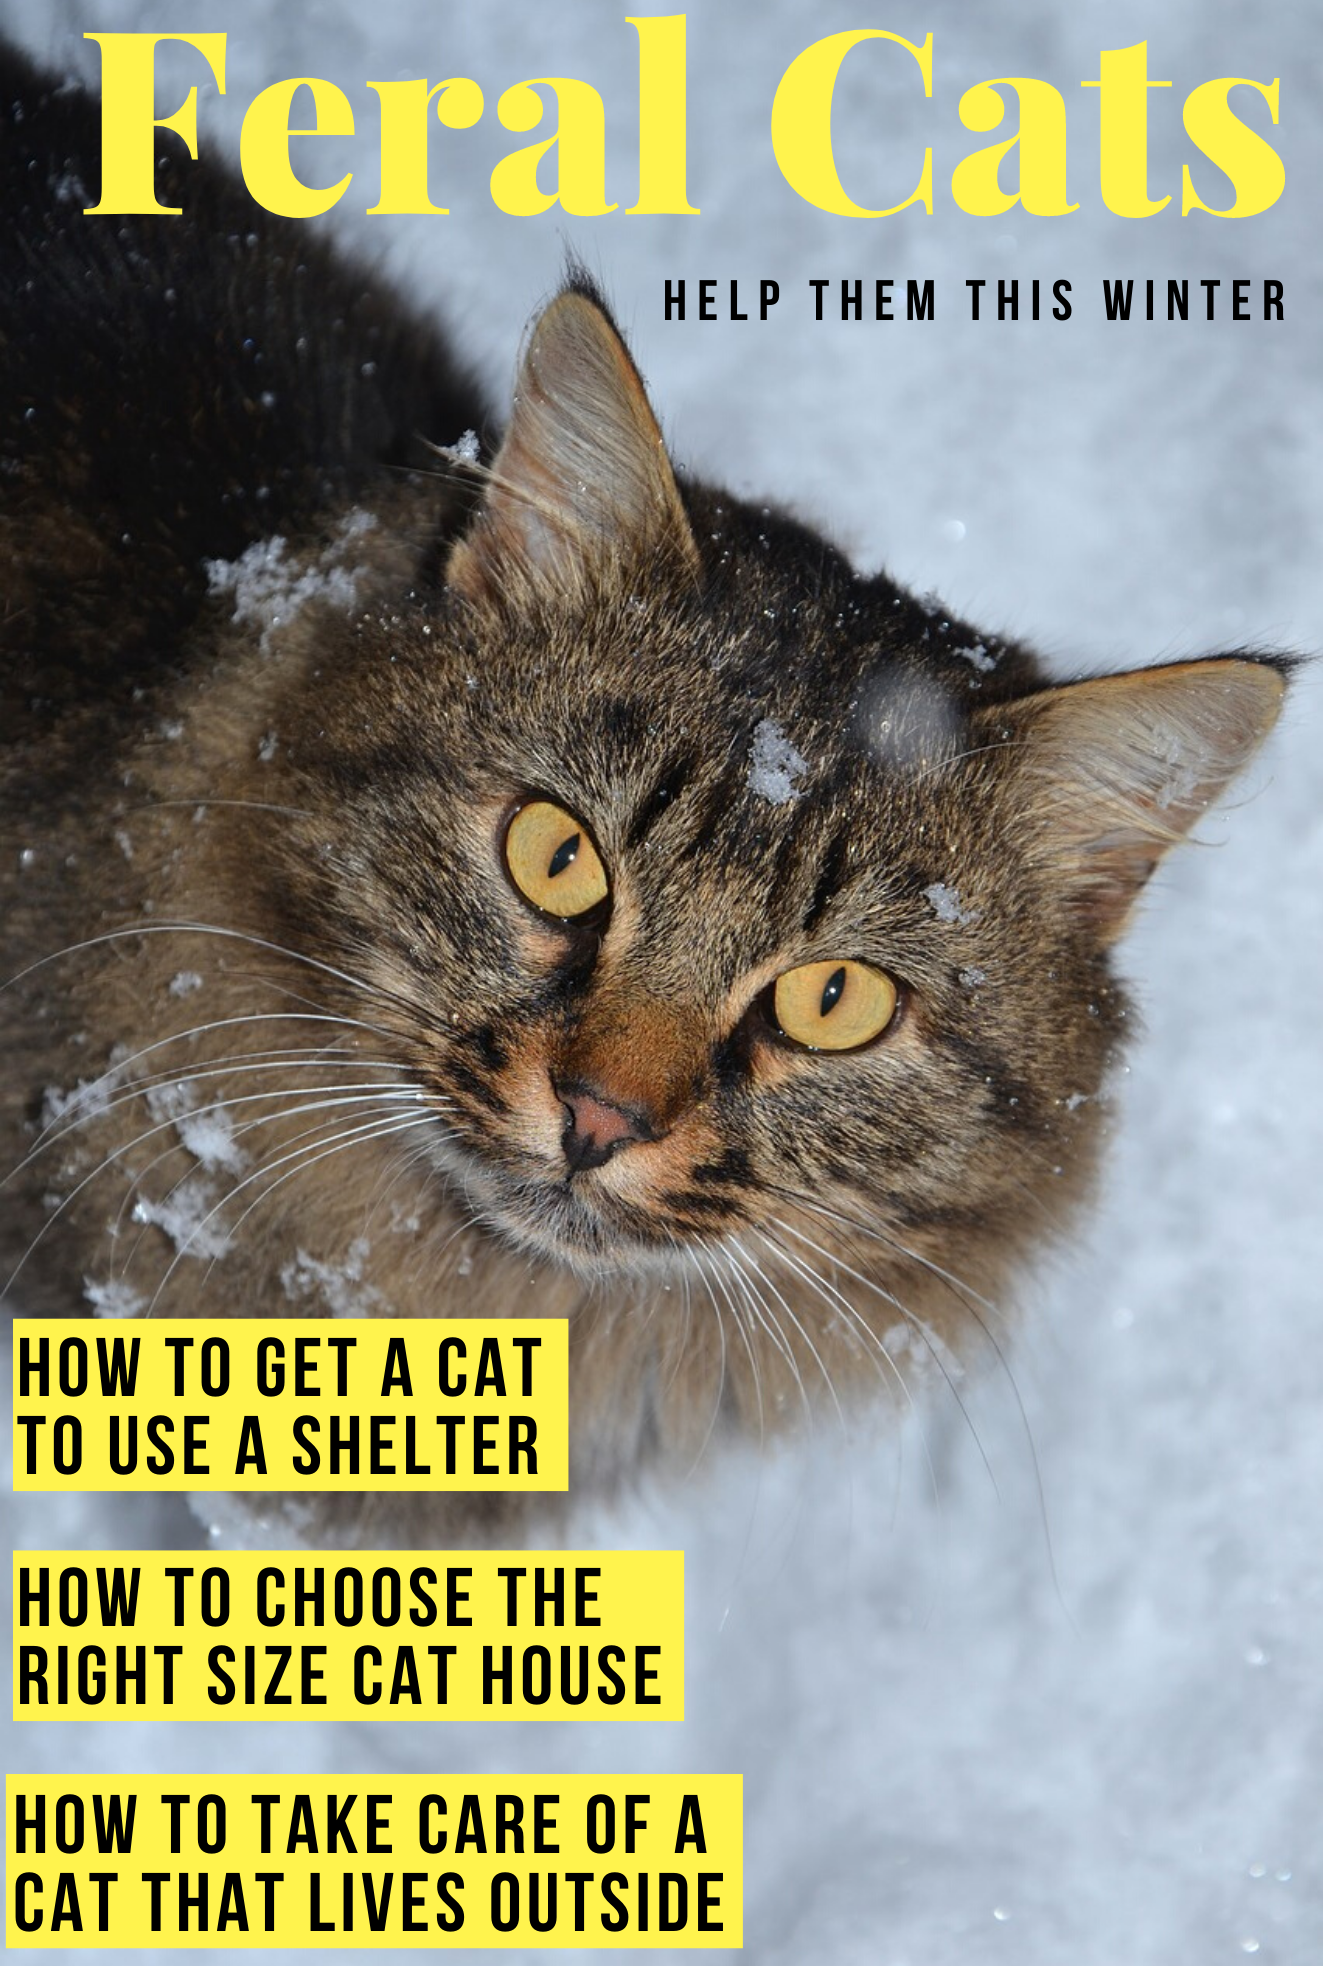 How To Help Feral And Stray Cats Cat Shelters For Winter Feral Cat House Outside Cat Shelter